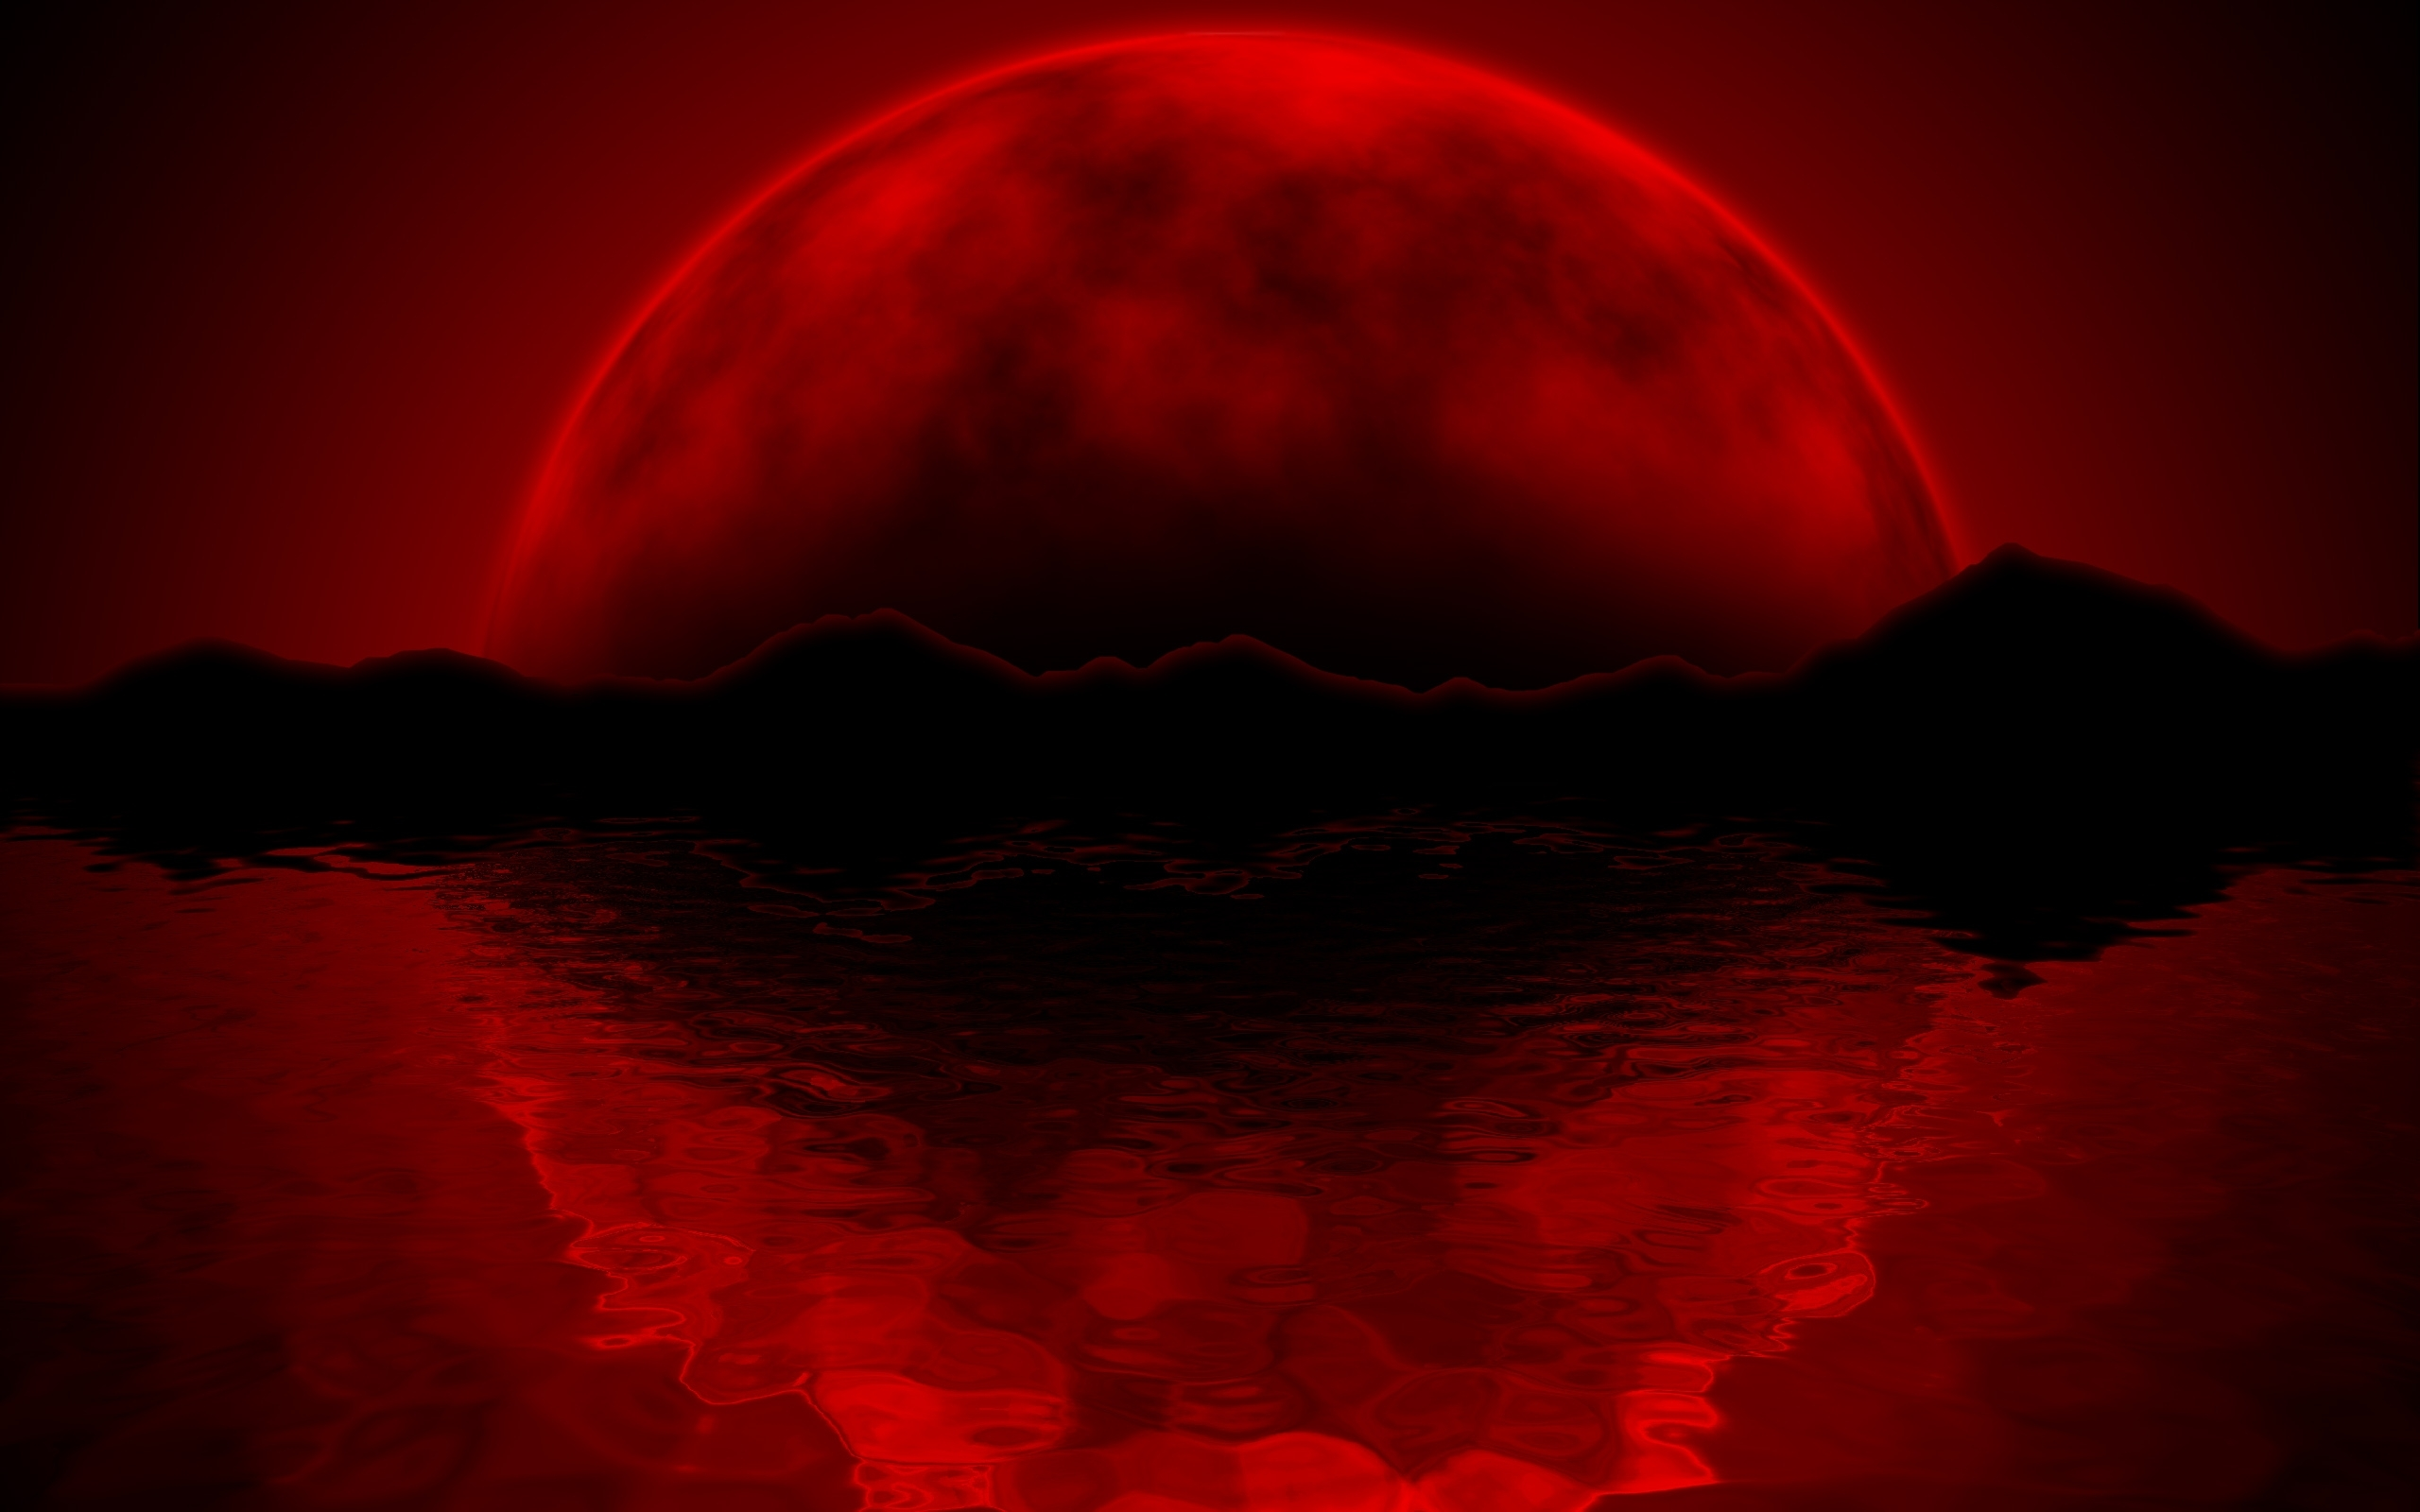 red-moon-wallpaper-mobile | wallpaper.wiki